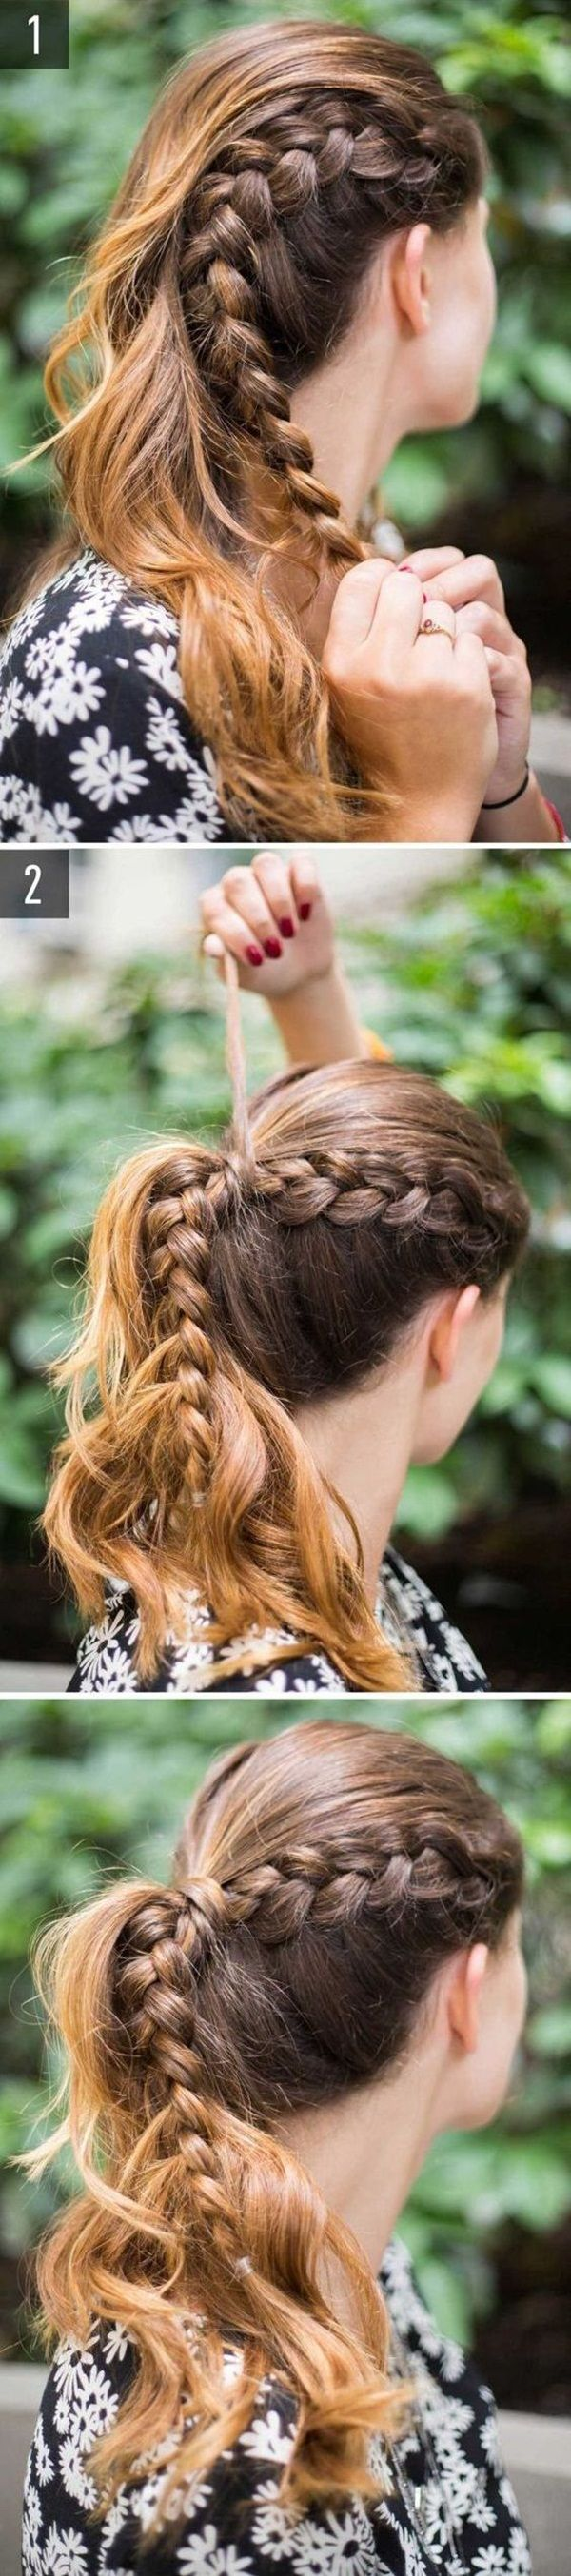 nice 40 Easy Hairstyles for Schools to Try in 2016 | www.barneyfrank.n......